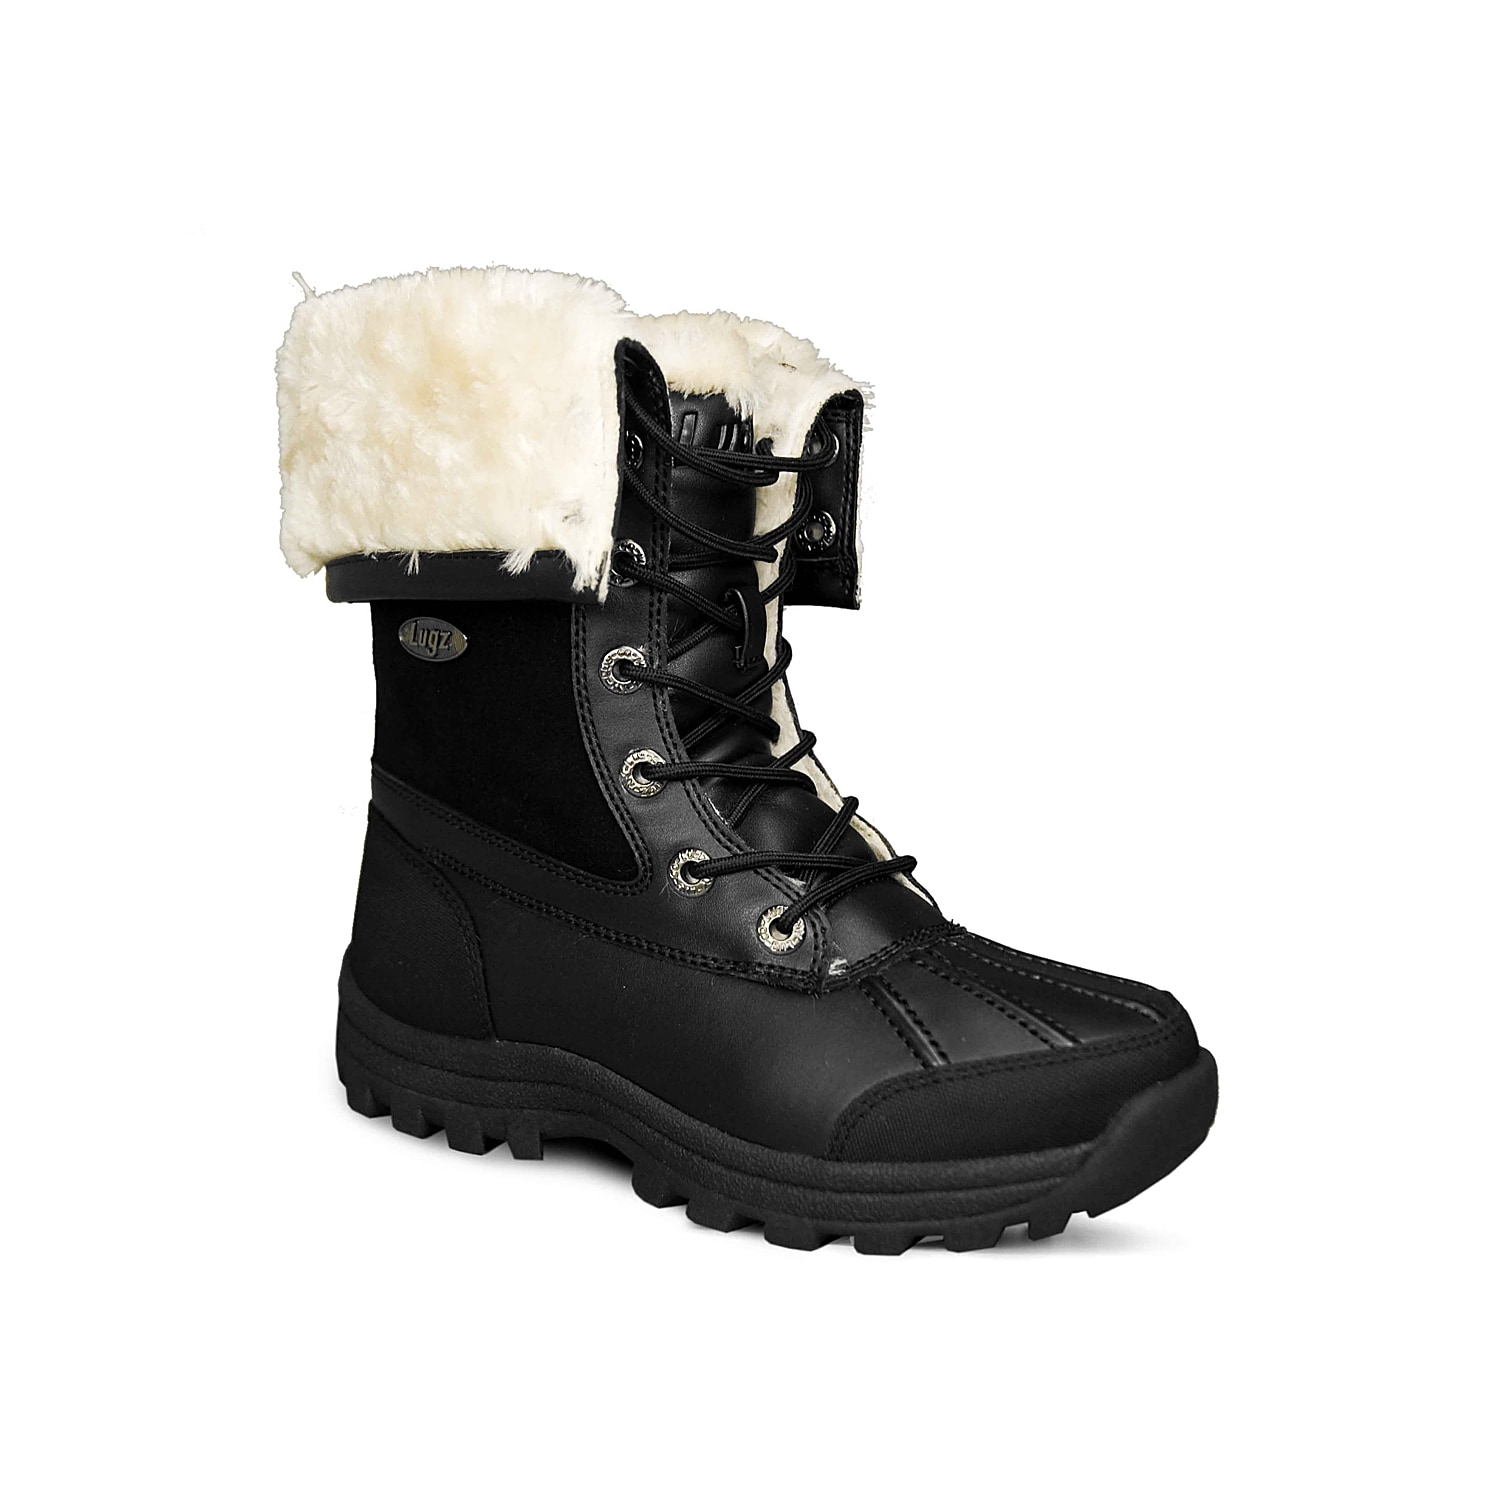 Lace up in the Tambora mid calf boots from Lugz for a fashionable update to your casual cold weather wardrobe! With cozy faux fur lining and a cushioned insole, these durable winter boots offer both comfort and style!Click here for Boot Measuring Guide.